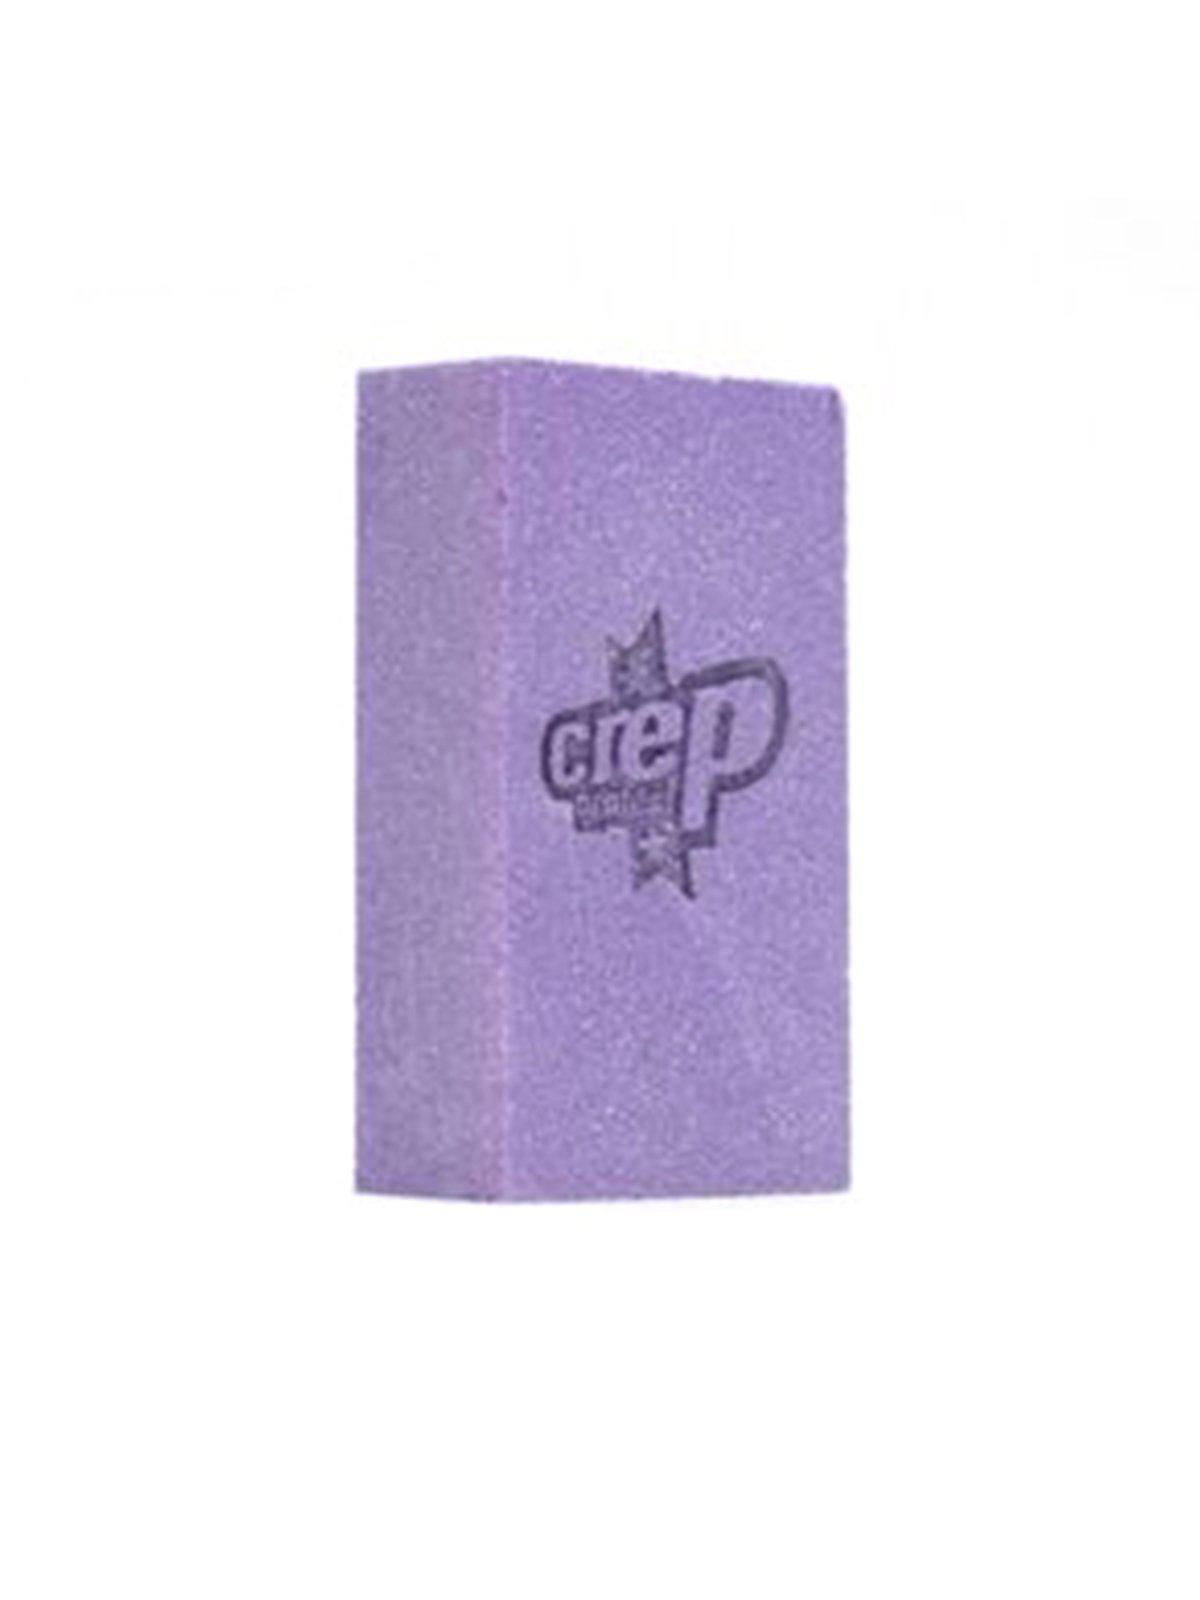 Crep Protect Eraser - MORE by Morello Indonesia